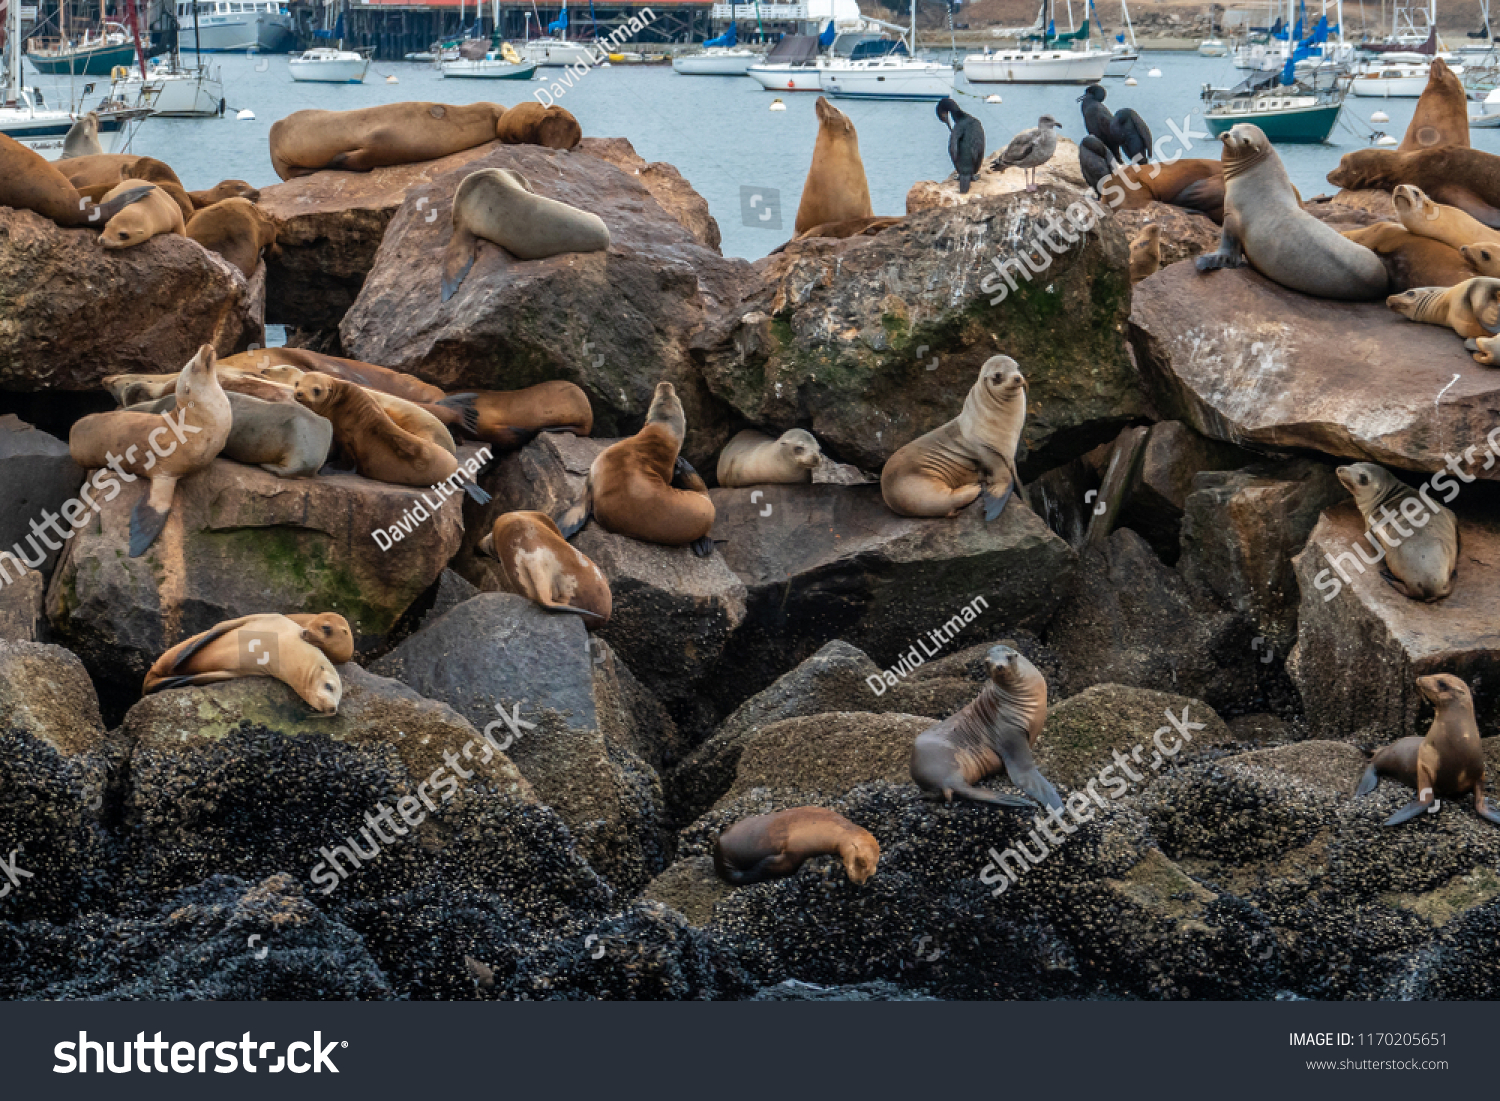 Sea Lions and Cormorants rest on the breakwater of the Monterey Harbor and Marina, on the Pacific Coast of central California on an overcast summer day.